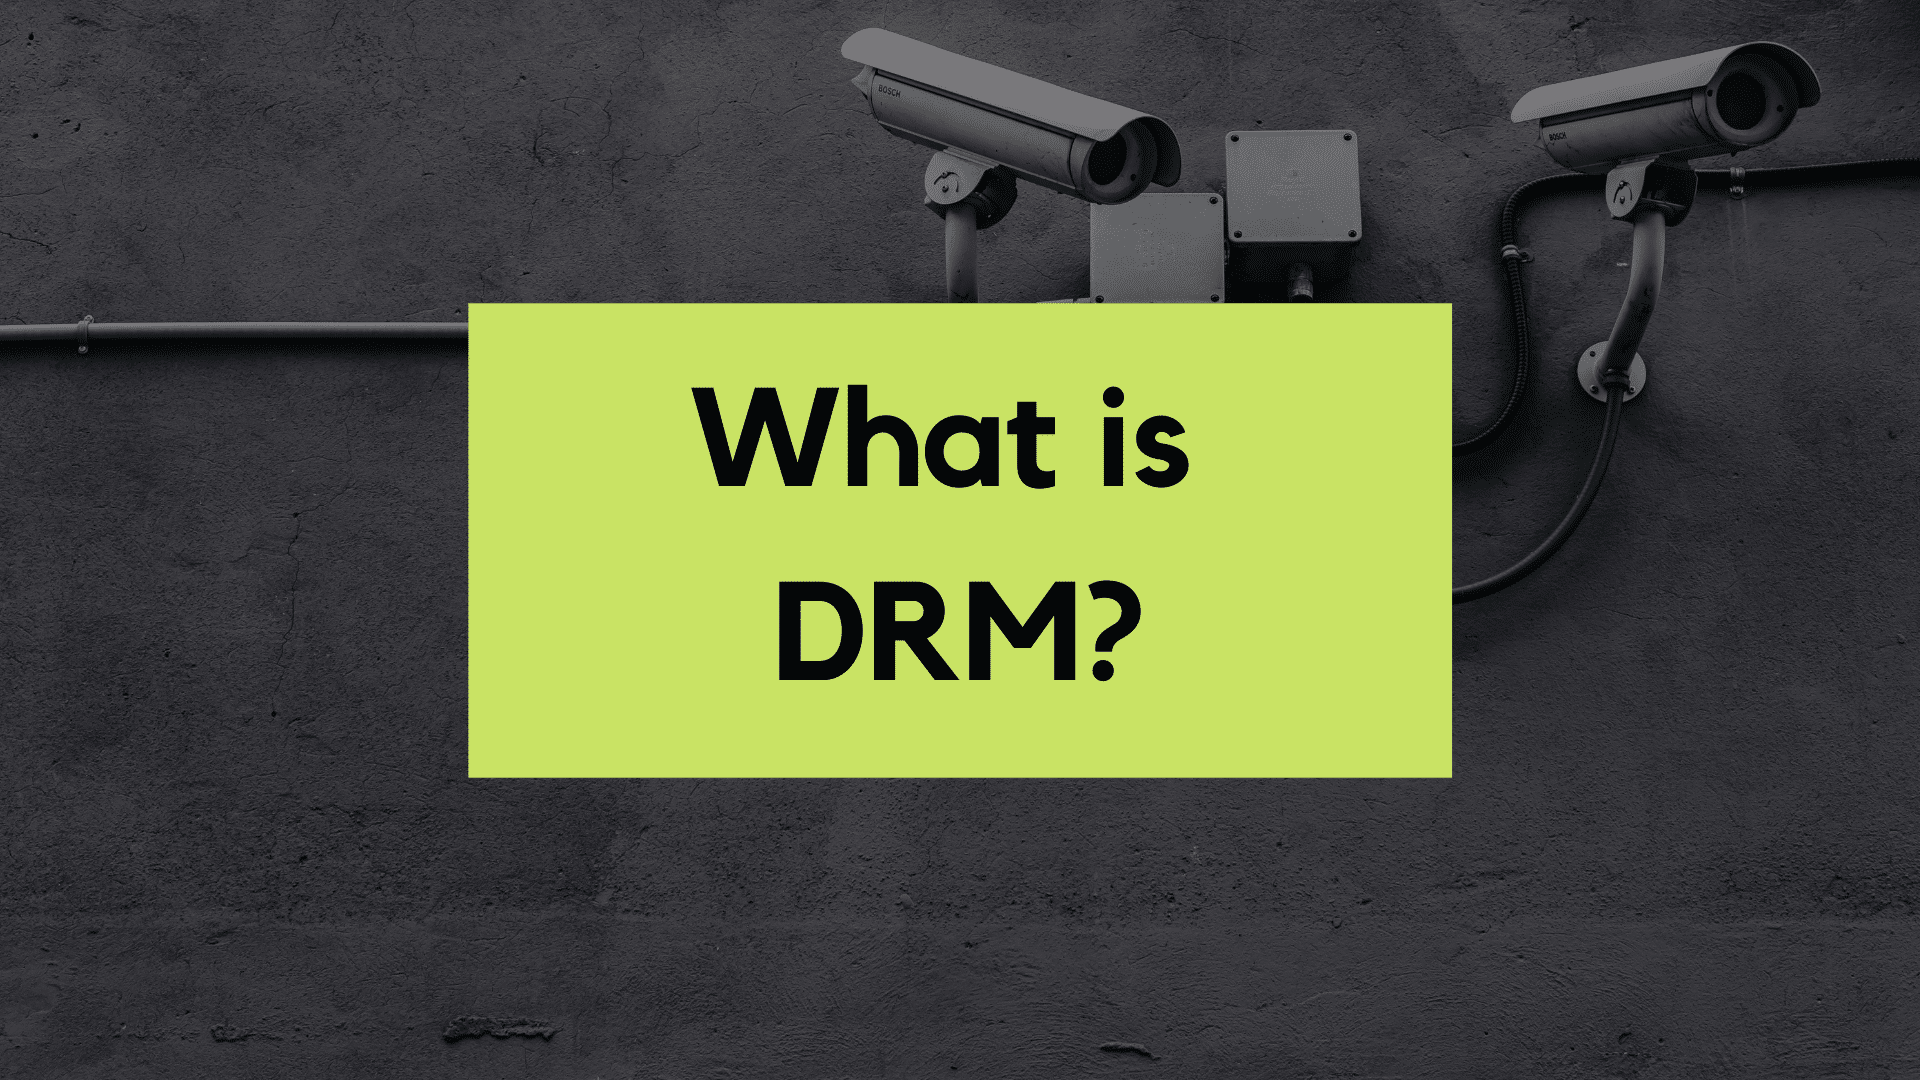 what is drm image